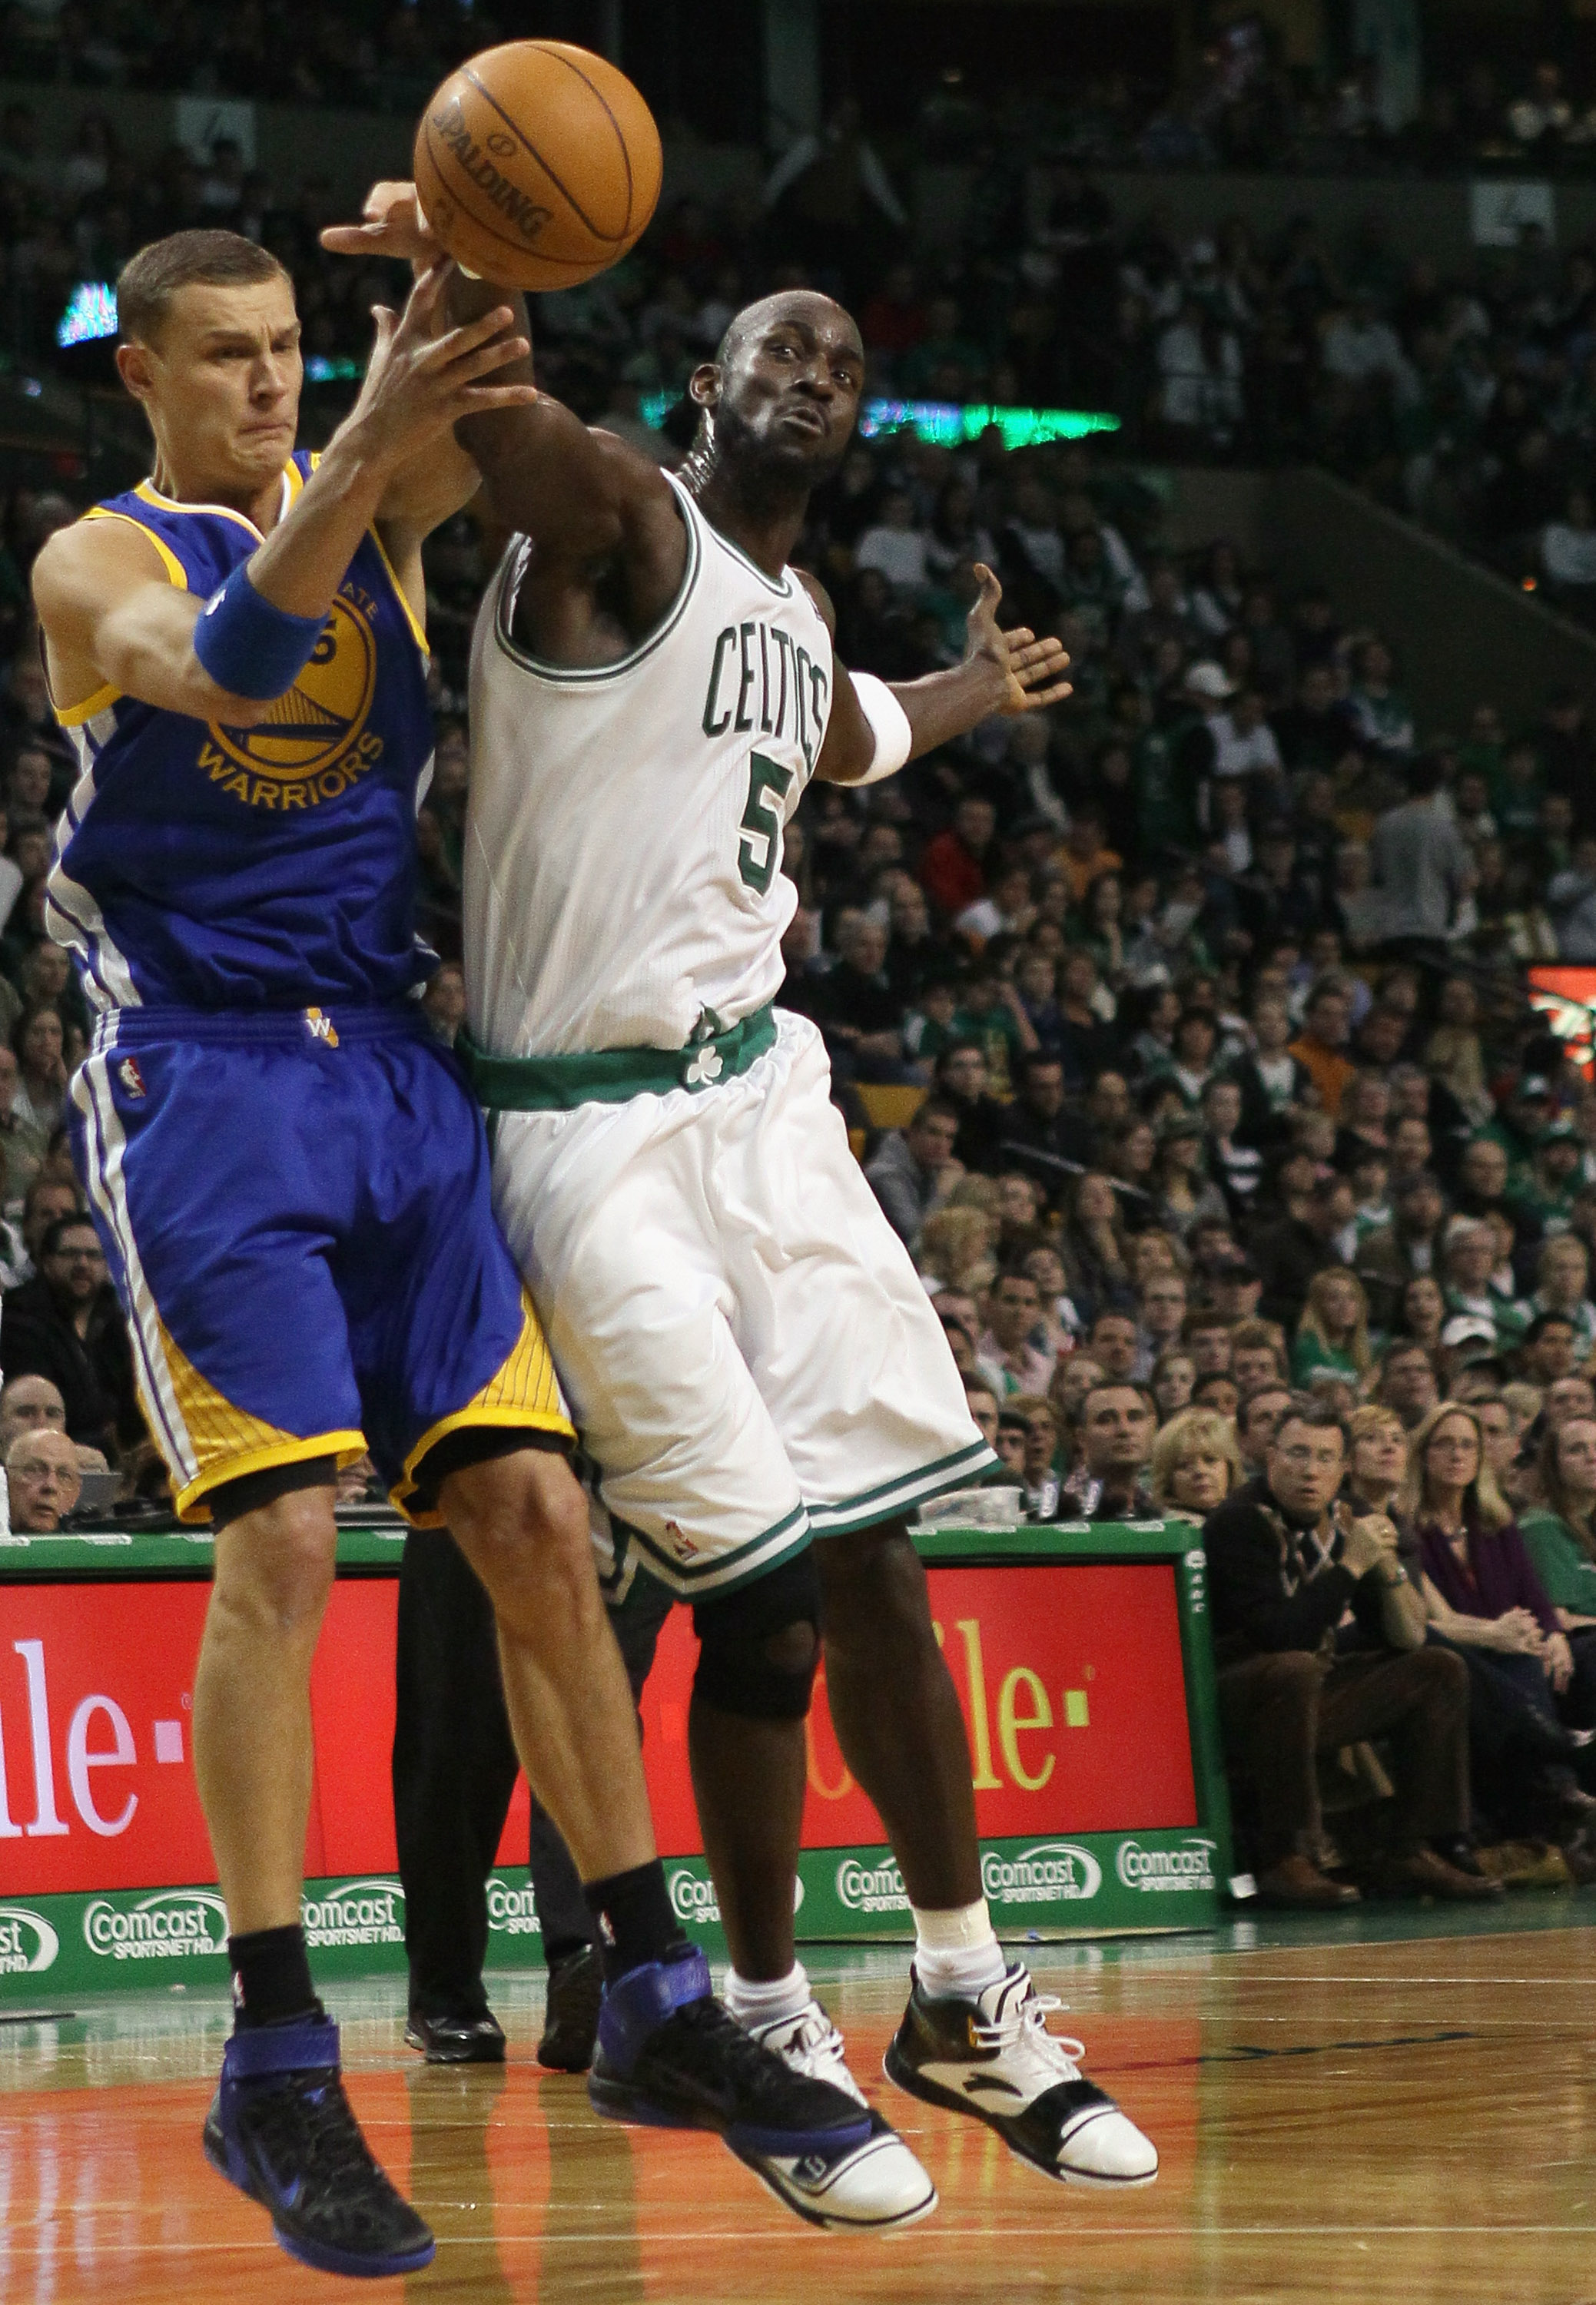 BOSTON, MA - MARCH 04:  Kevin Garnett #5 of the Boston Celtics tries to keep the ball from Andris Biedrins #15 of the Golden State Warriors on March 4, 2011 at the TD Garden in Boston, Massachusetts.  NOTE TO USER: User expressly acknowledges and agrees t